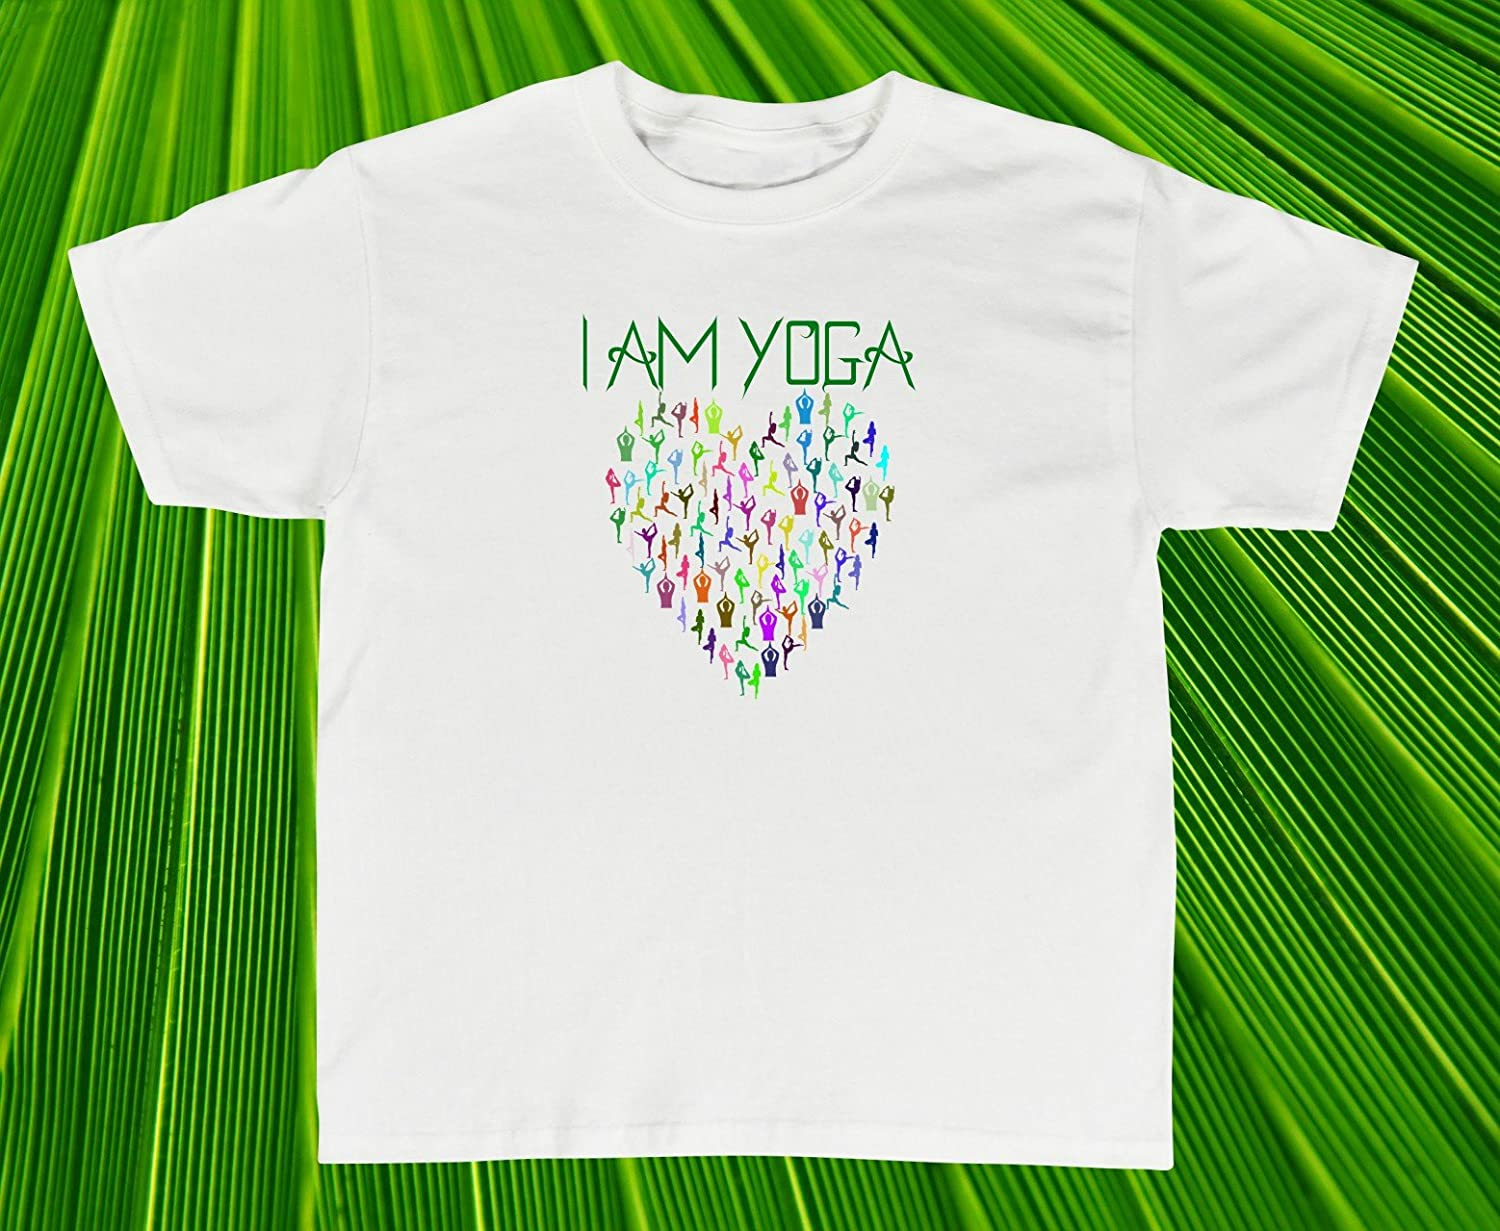 Amazon.com: Yoga Shirt I Am Yoga T-Shirts Yoga Classes ...